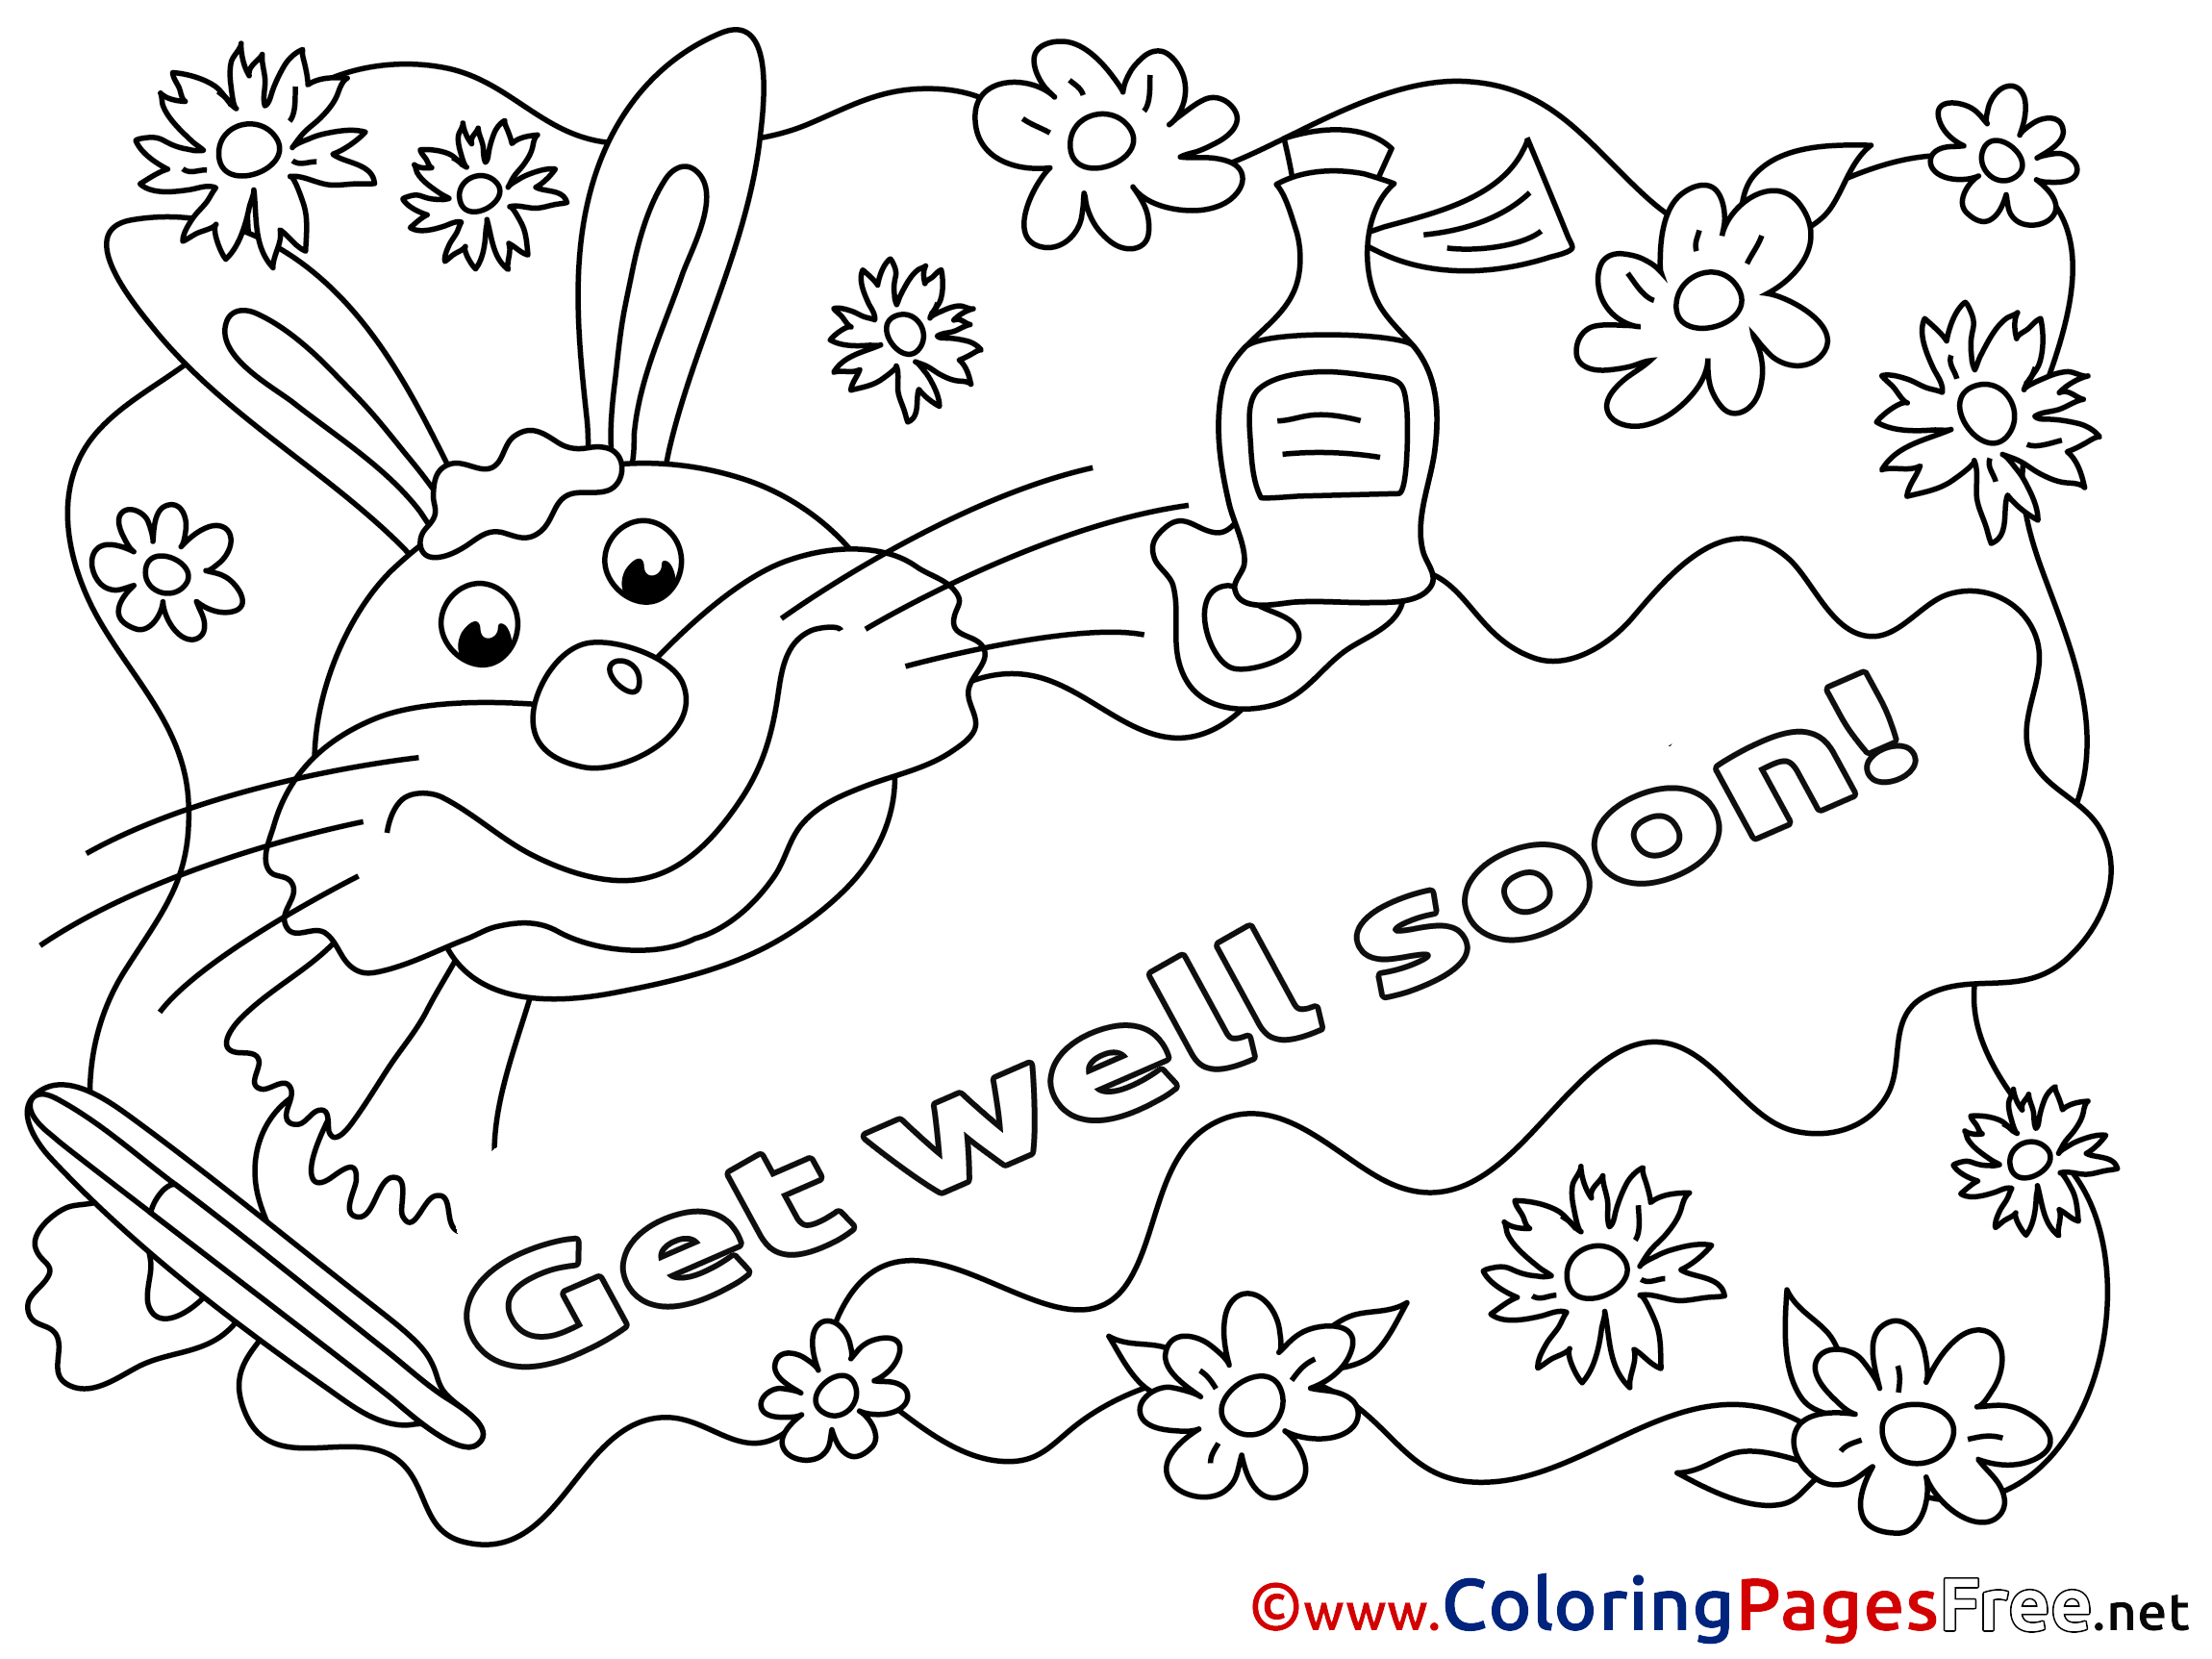 get well soon coloring pages contegri com